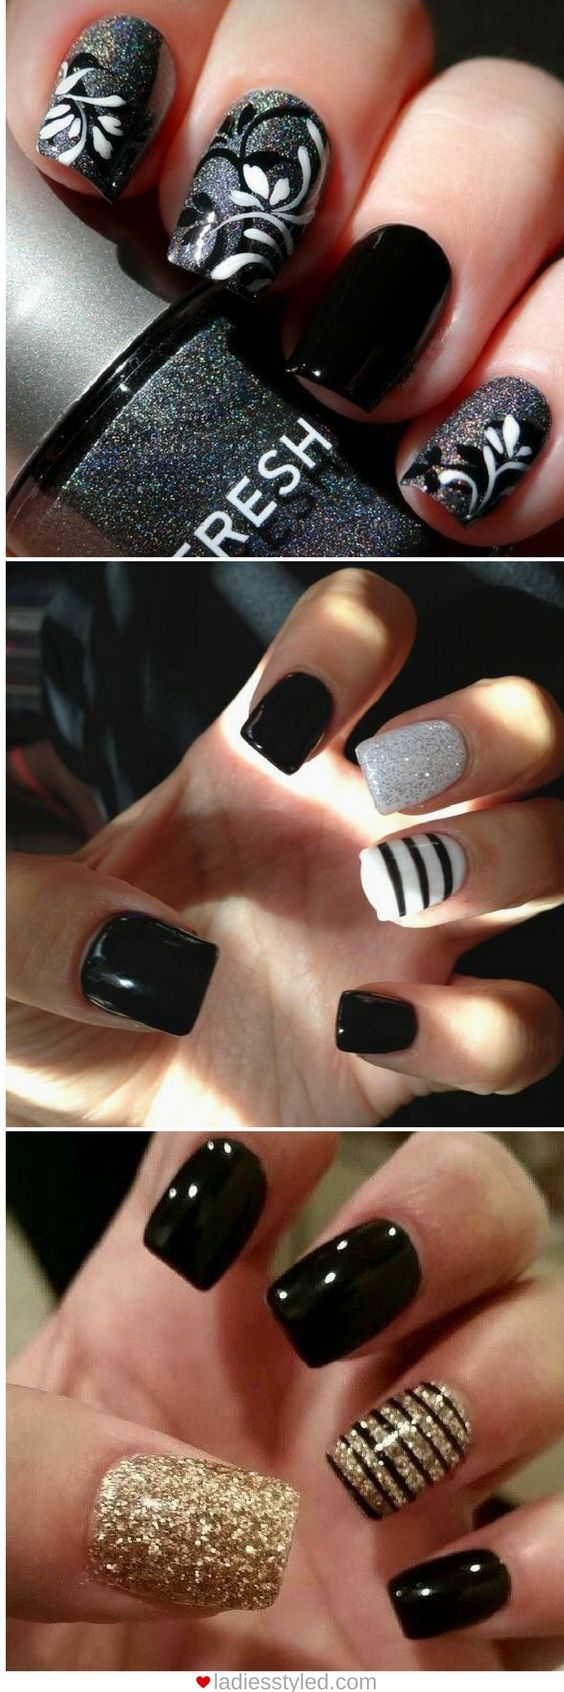 106 beautiful nail art designs to copy right now beautiful nail